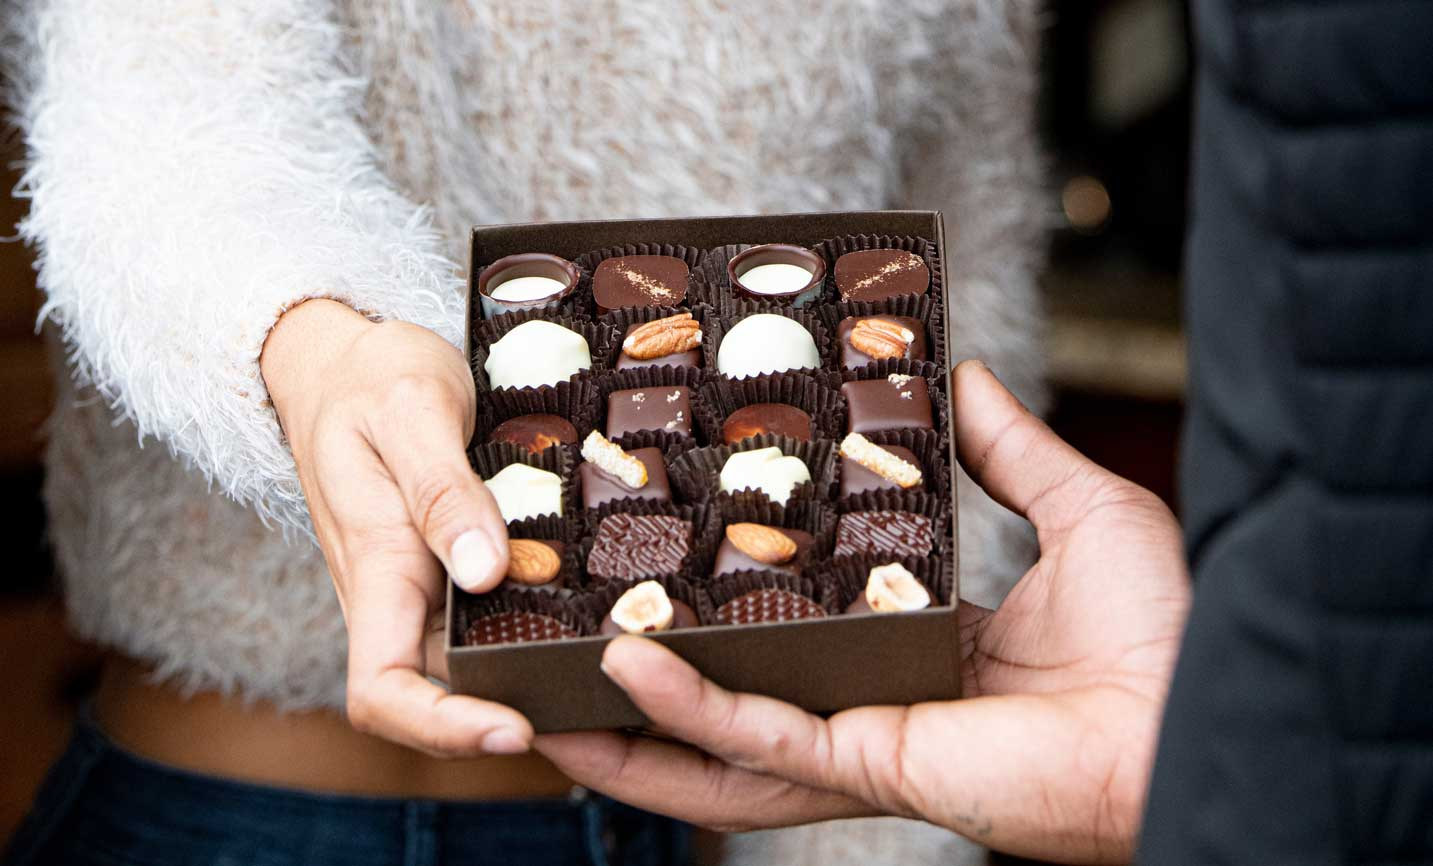 A hand passes an open box of chocolates to a friend.